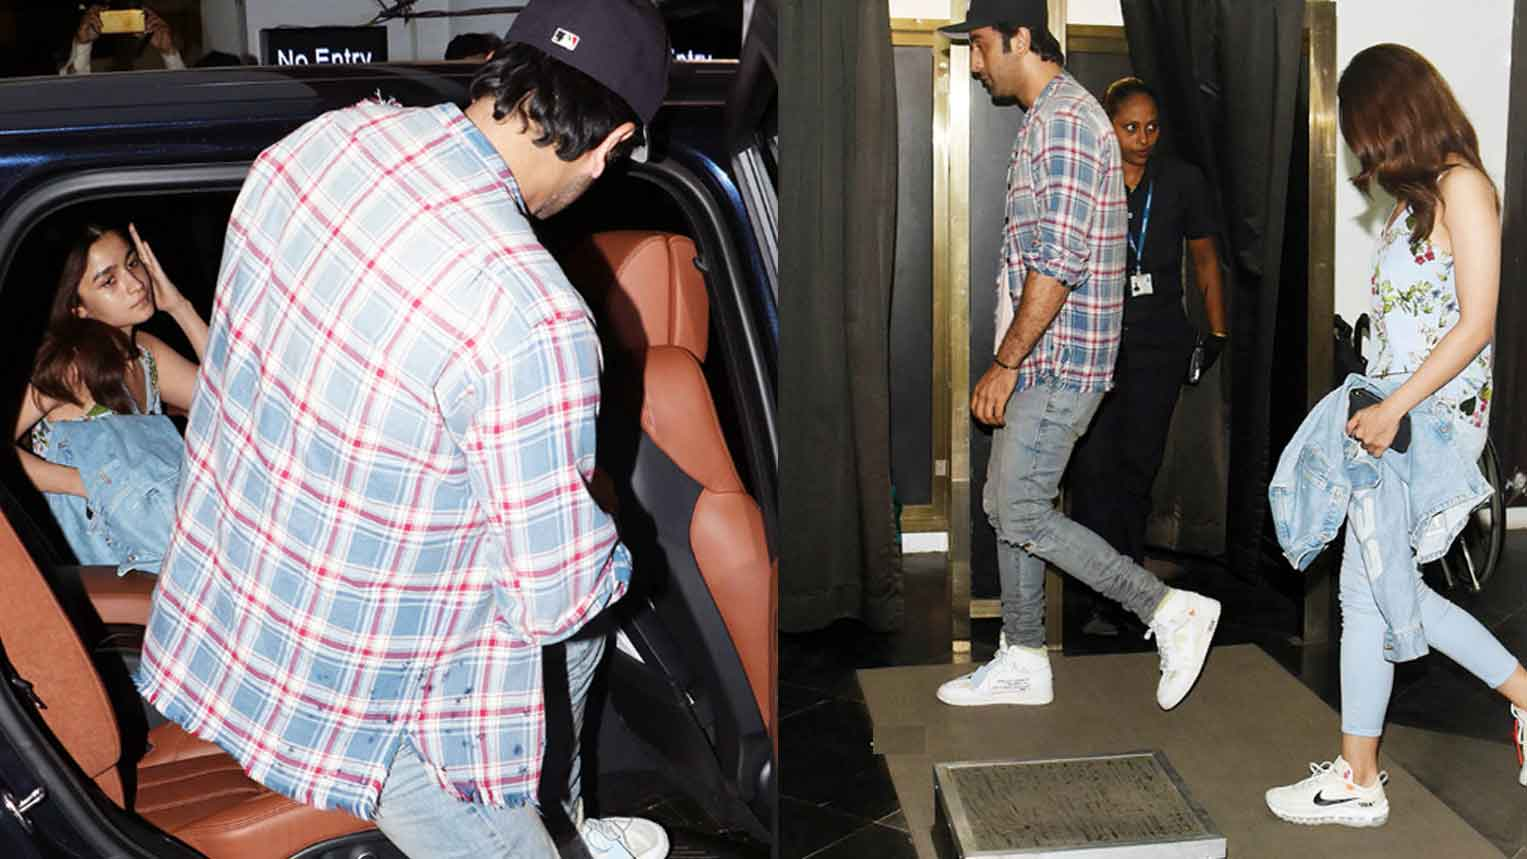 Ranbir Kapoor, Alia Bhatt go on a movie date, watch 'Avengers: Endgame' together